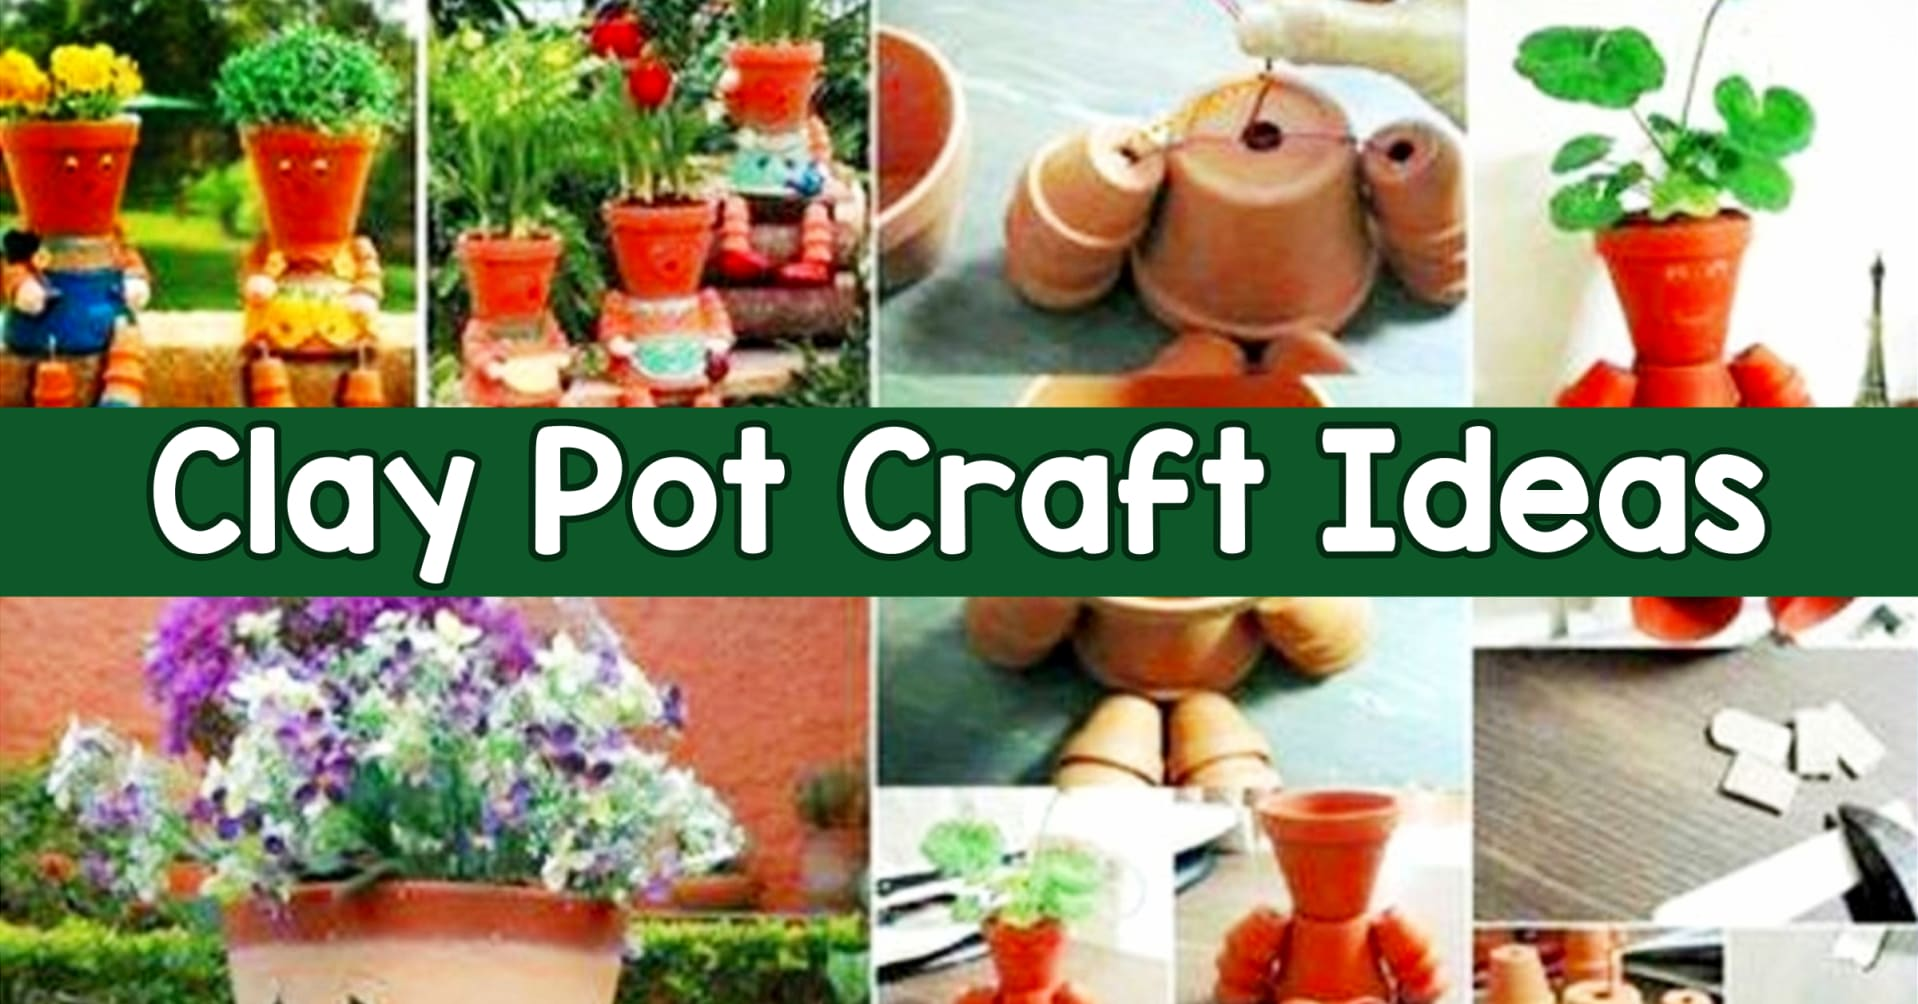 Decorative terra cotta pots - how to decorate clay pots for flowers and more craft ideas for clay pots for your yard, patio or home